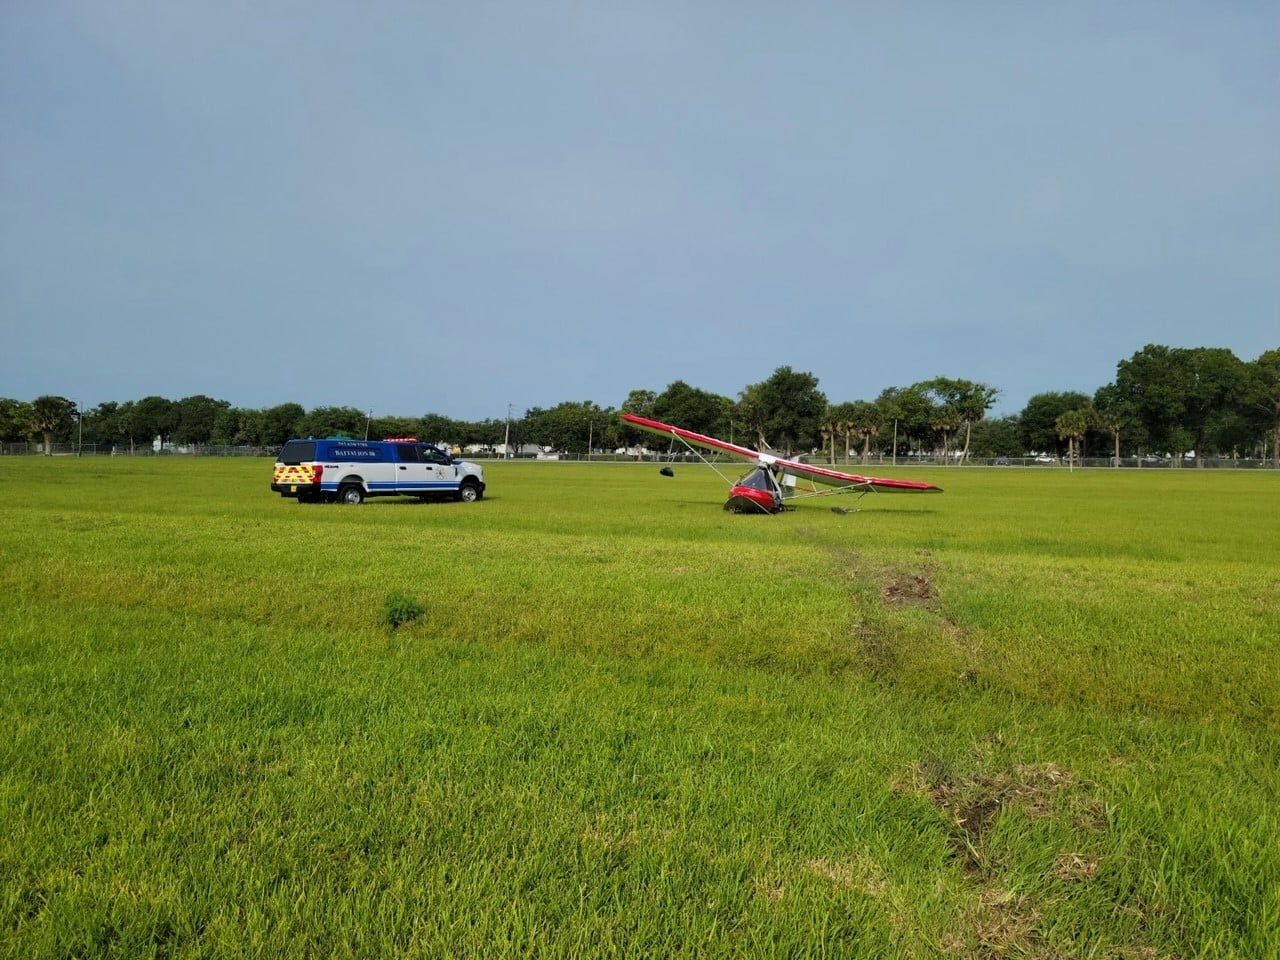 Small plane crashes after taking off near DeLand airport